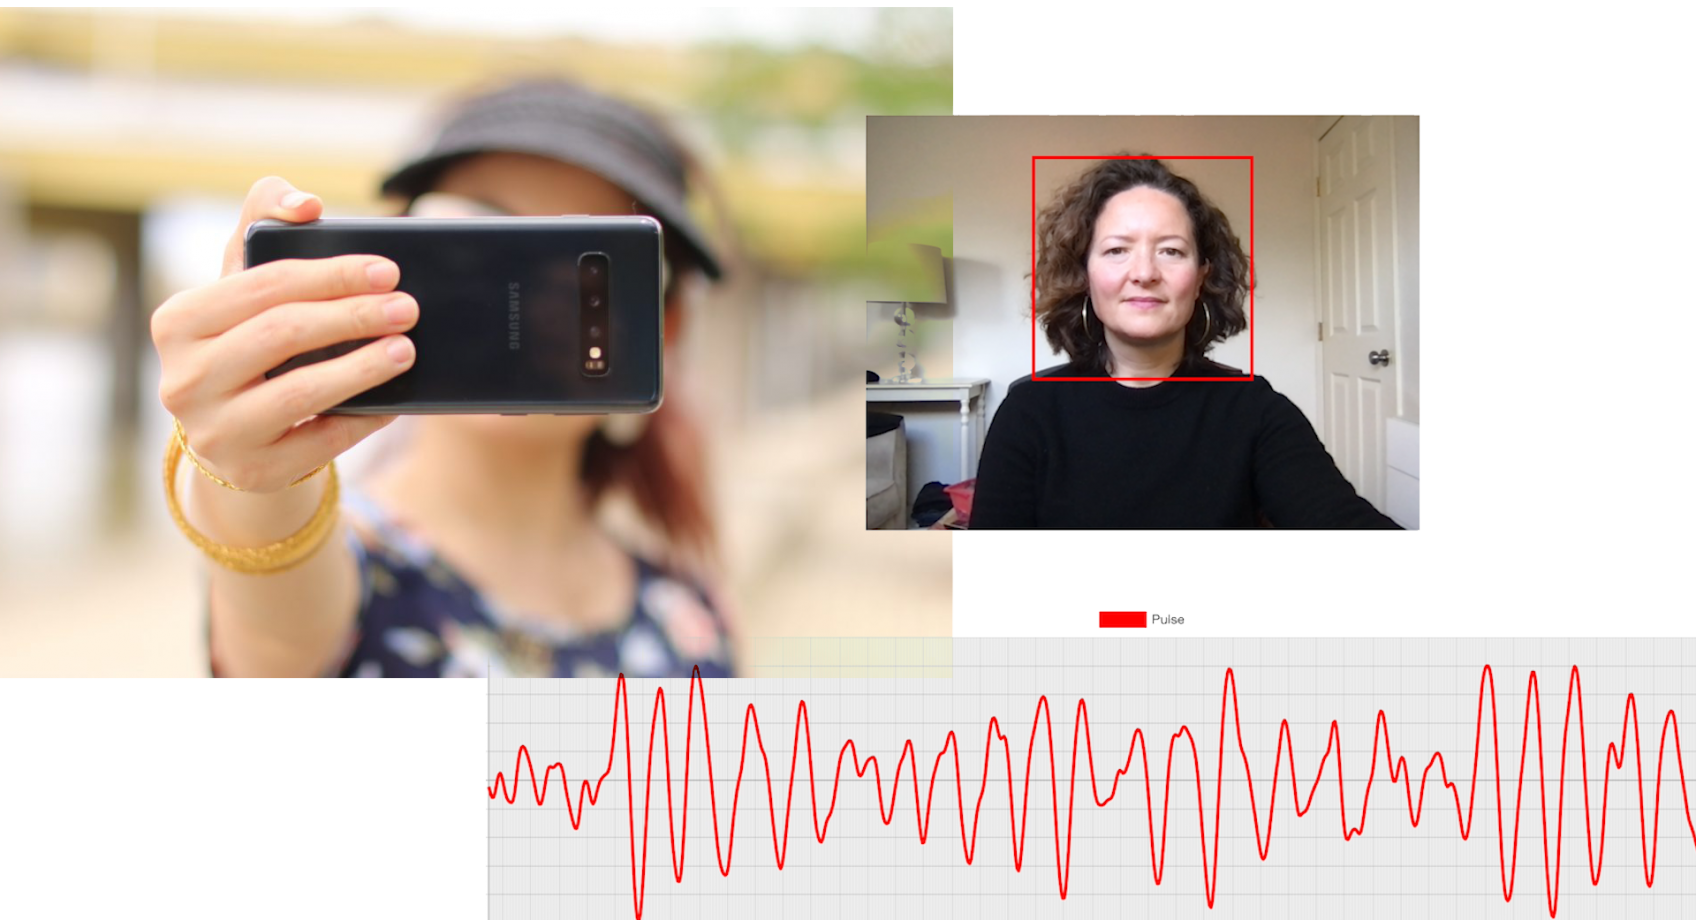 New system that uses smartphone or computer cameras to measure pulse, respiration rate could help future personalized telehealth appointments Banner